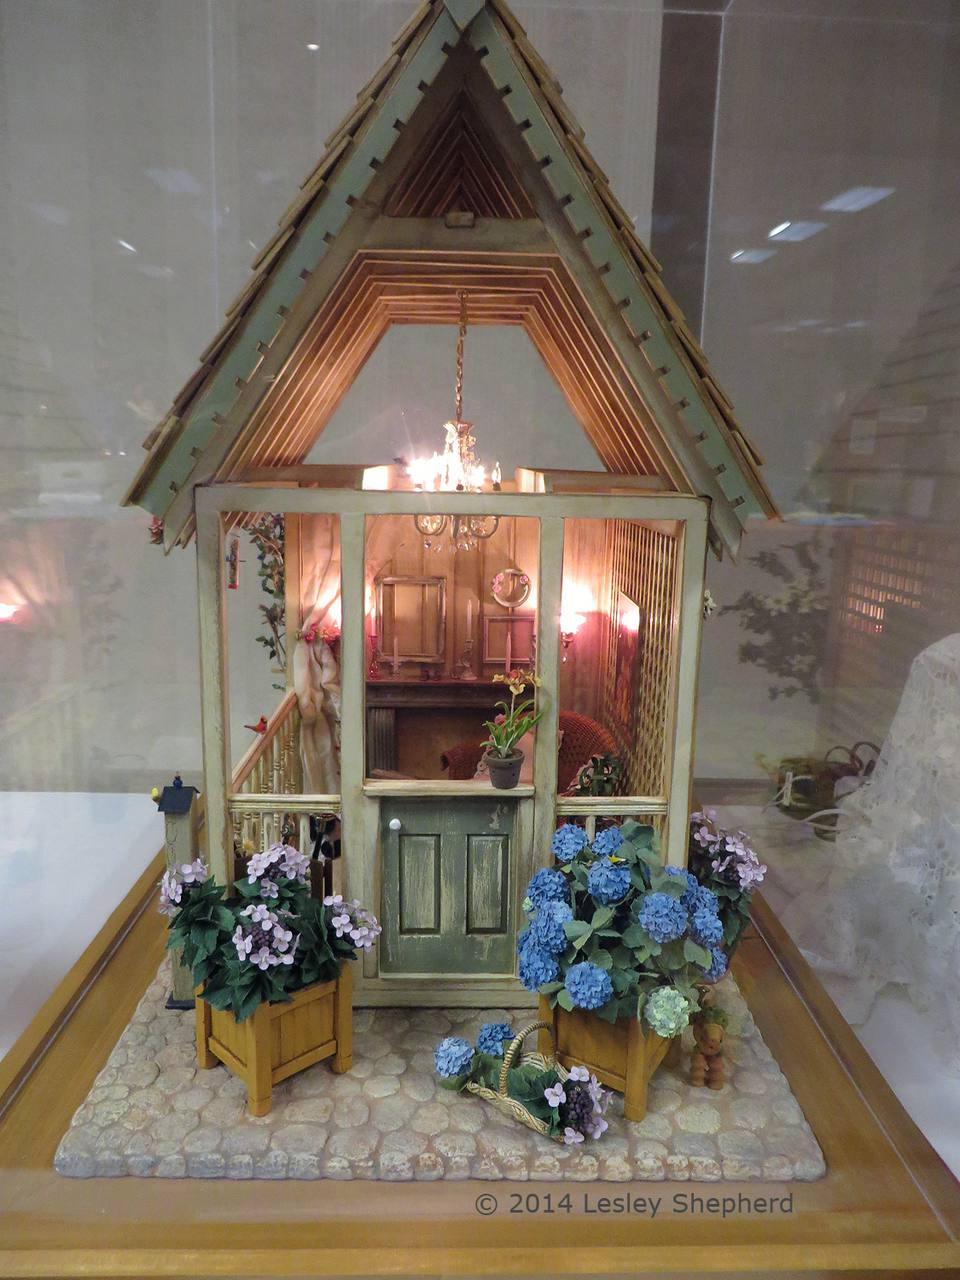 End view of a shabby chic garden shed in 1:12 scale by Janet M. Oliver